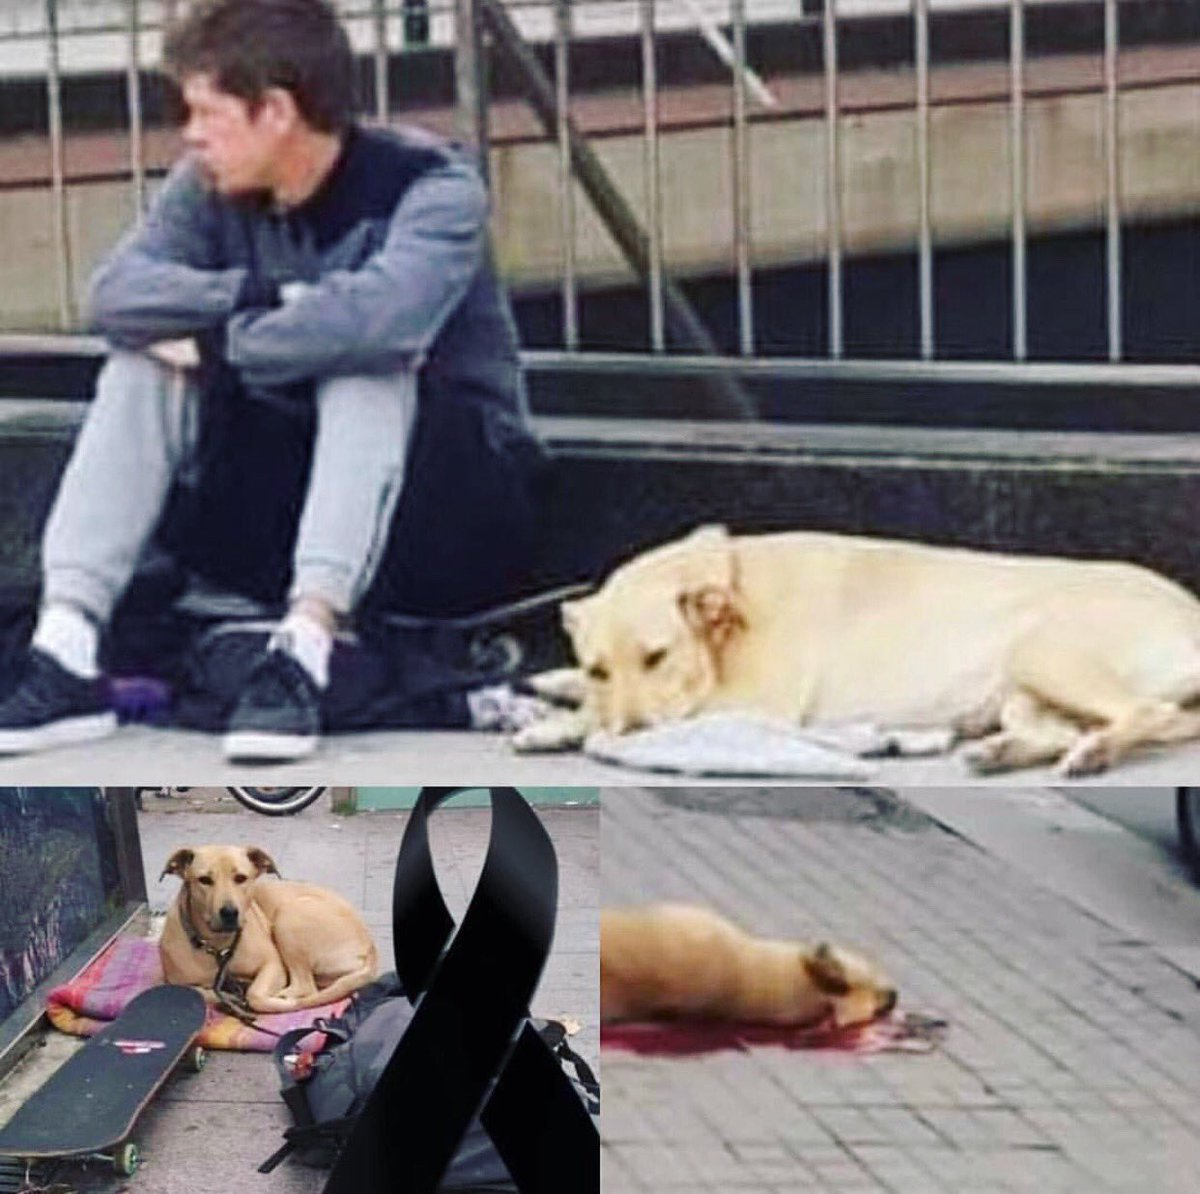 🚨#Barcelona, #Spain, at #hotelgranvia a homeless boy sleeps with his dog in the parking lot of the hotel. The managers were disturbed by their presence & called police & police shot the dog dead & arrested the boy.💔🐕 Share Far & Wide! Call For #JusticeforSota #JusticiaParaSota